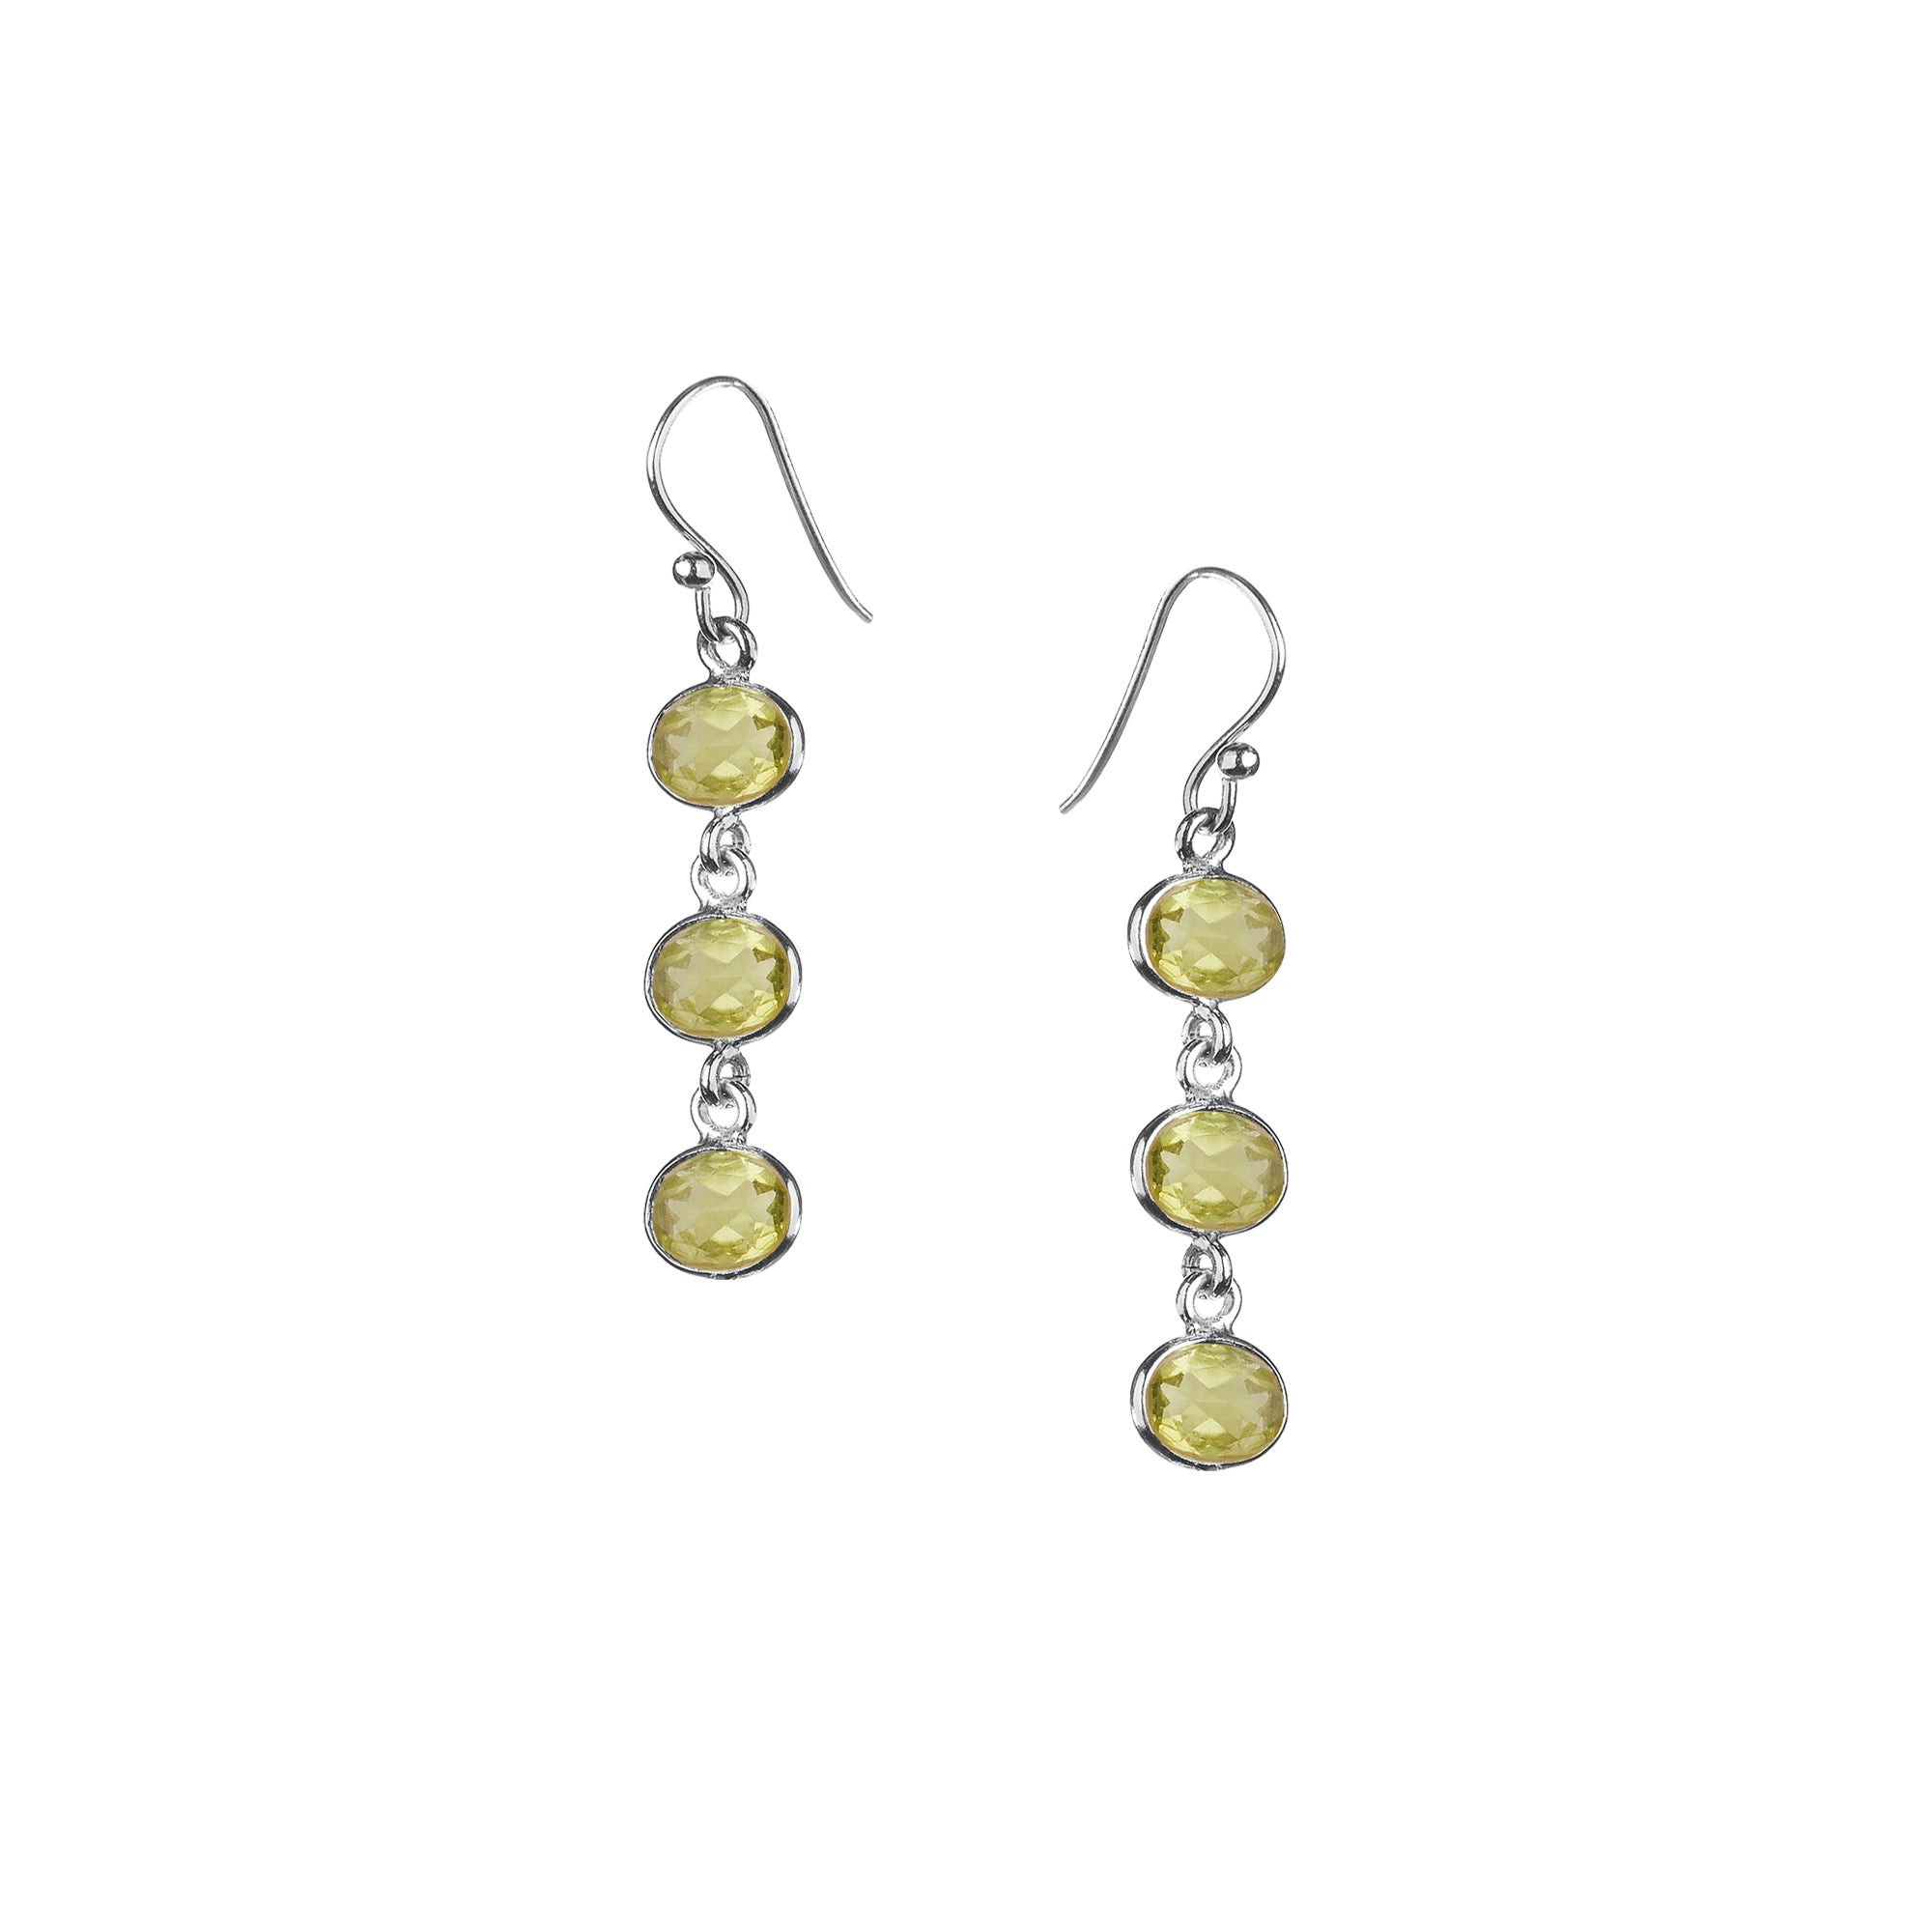 Trellis Earring in Silver with Peridot